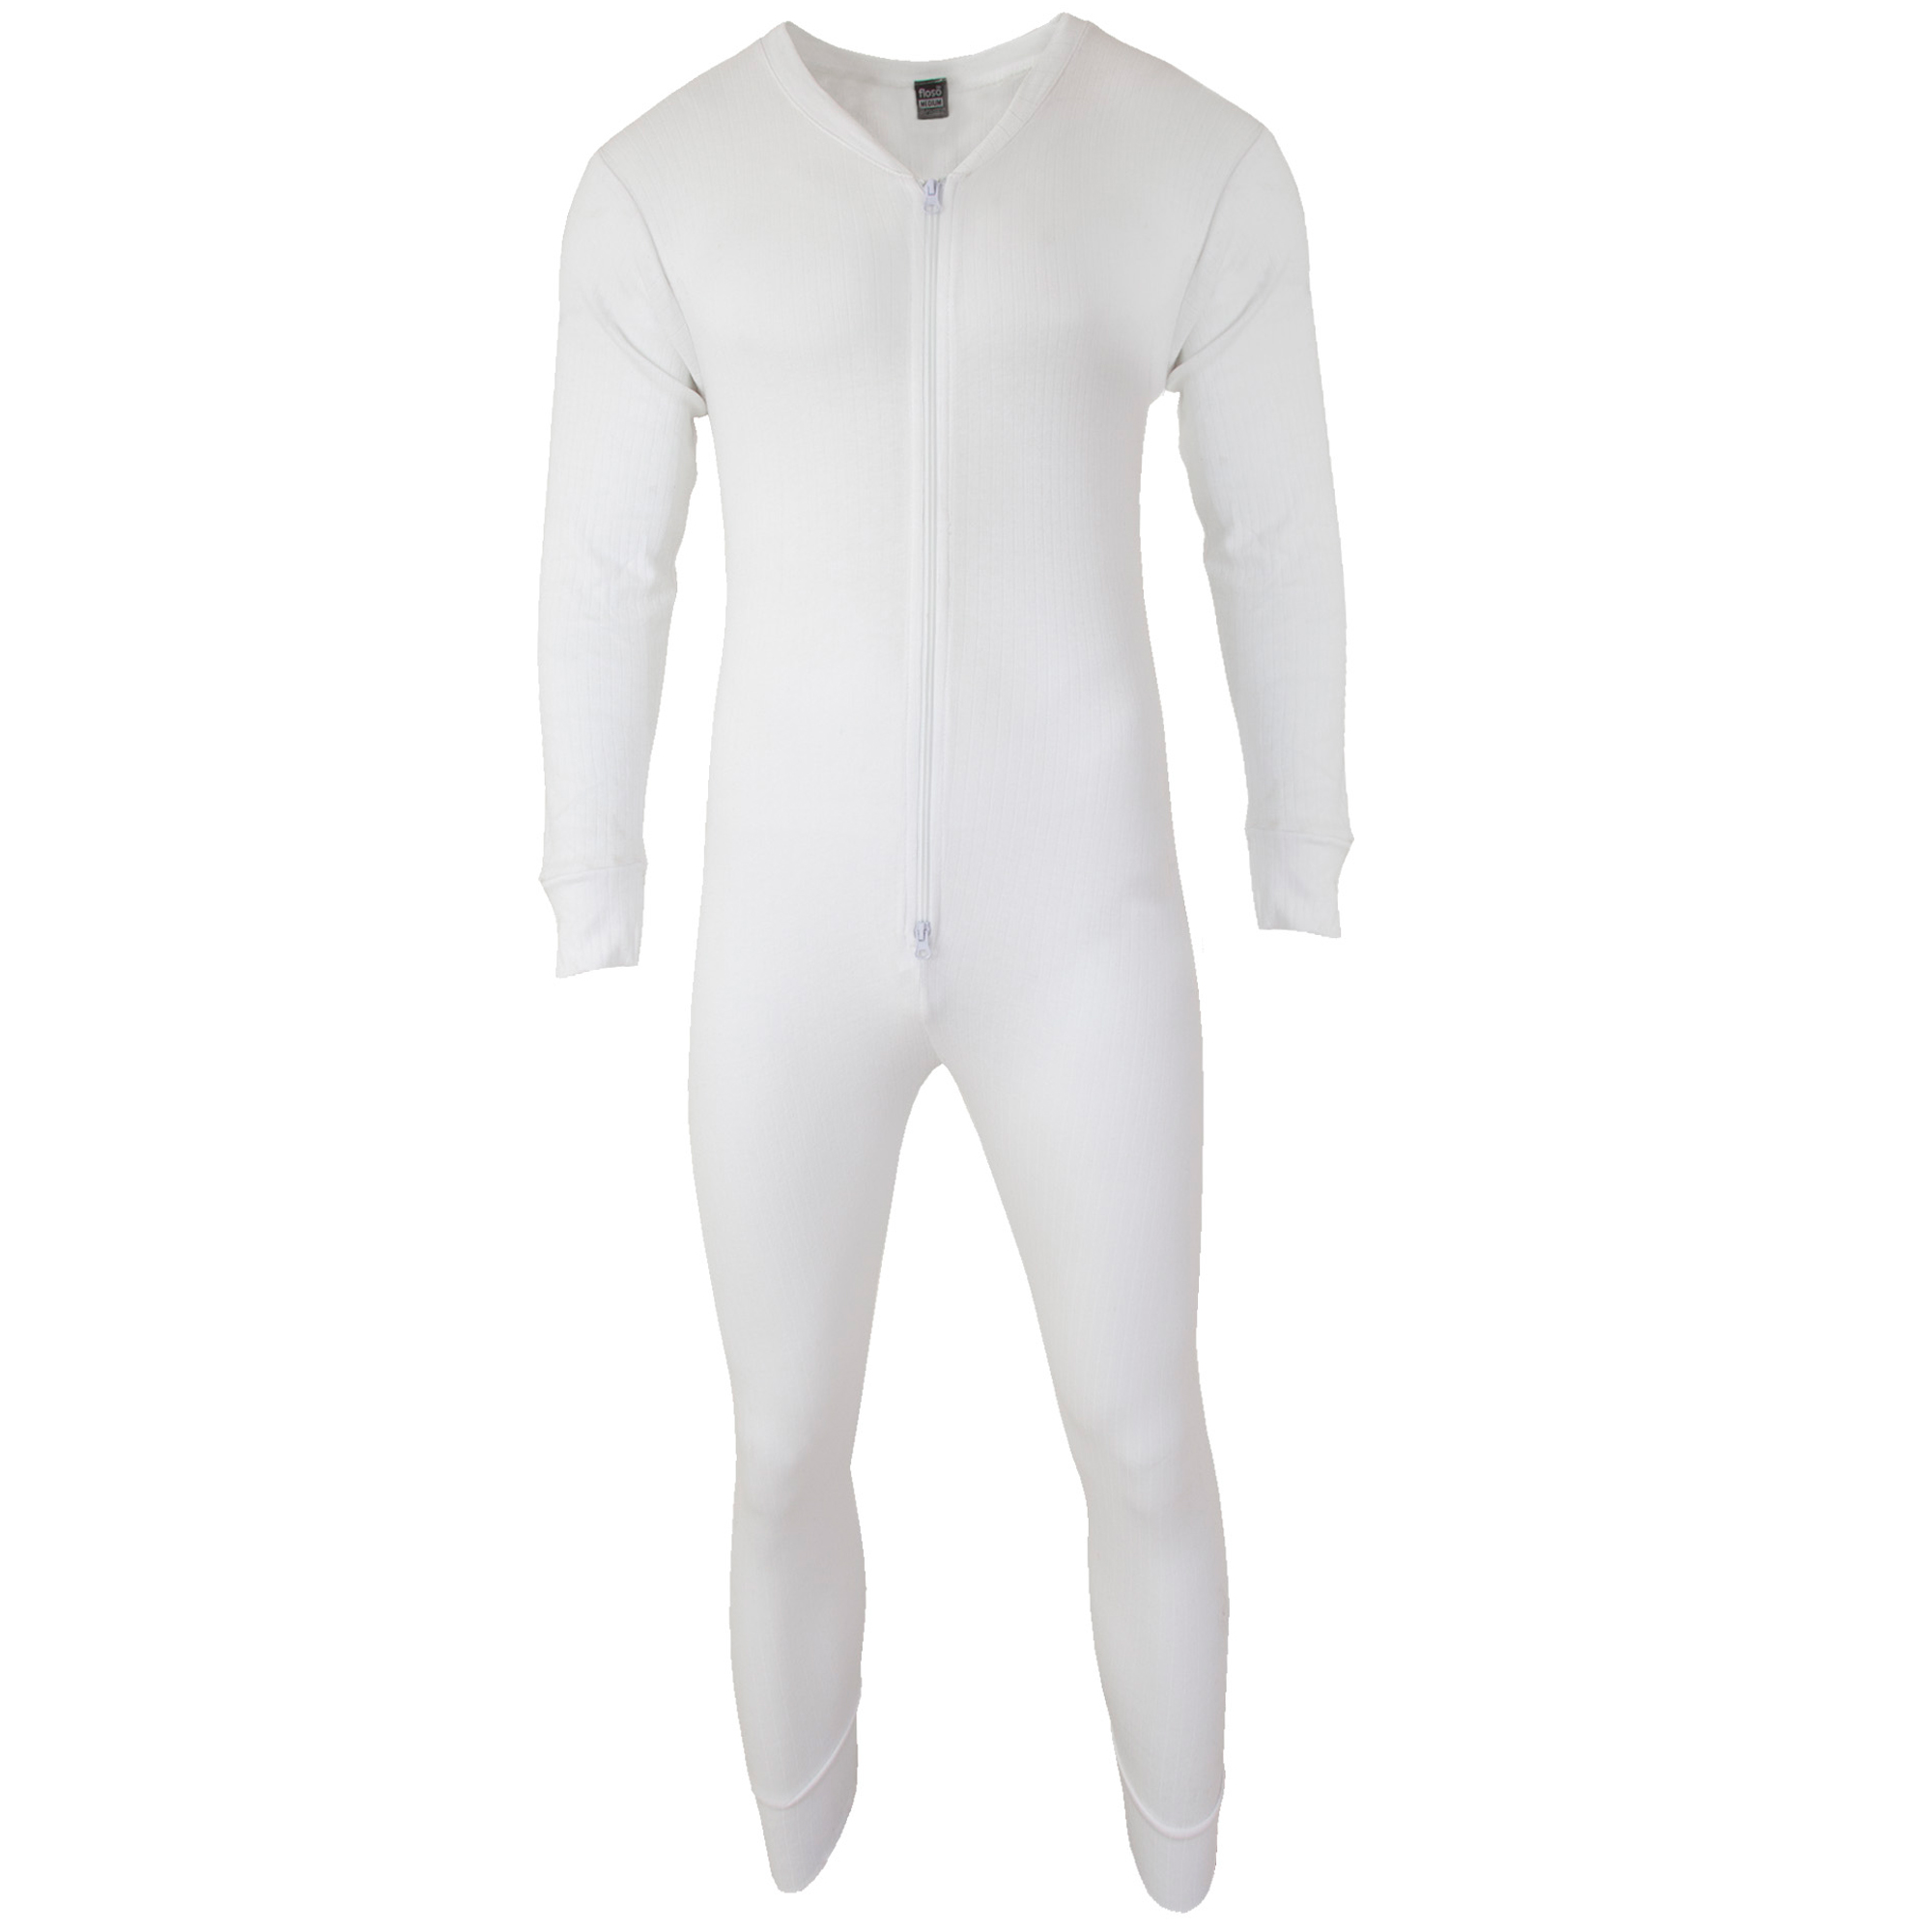 Mens All in One Thermal Underwear. All in One Suit. OFFICIAL BRITWEAR Octave Mens Thermal Underwear All In One Union Suit/Thermal Body Suit. by Octave. £ - £ Prime. Some sizes/colours are Prime eligible. out of 5 stars Octave Mens Thermal Underwear All In One Union Suit with Zipped Back Flap.